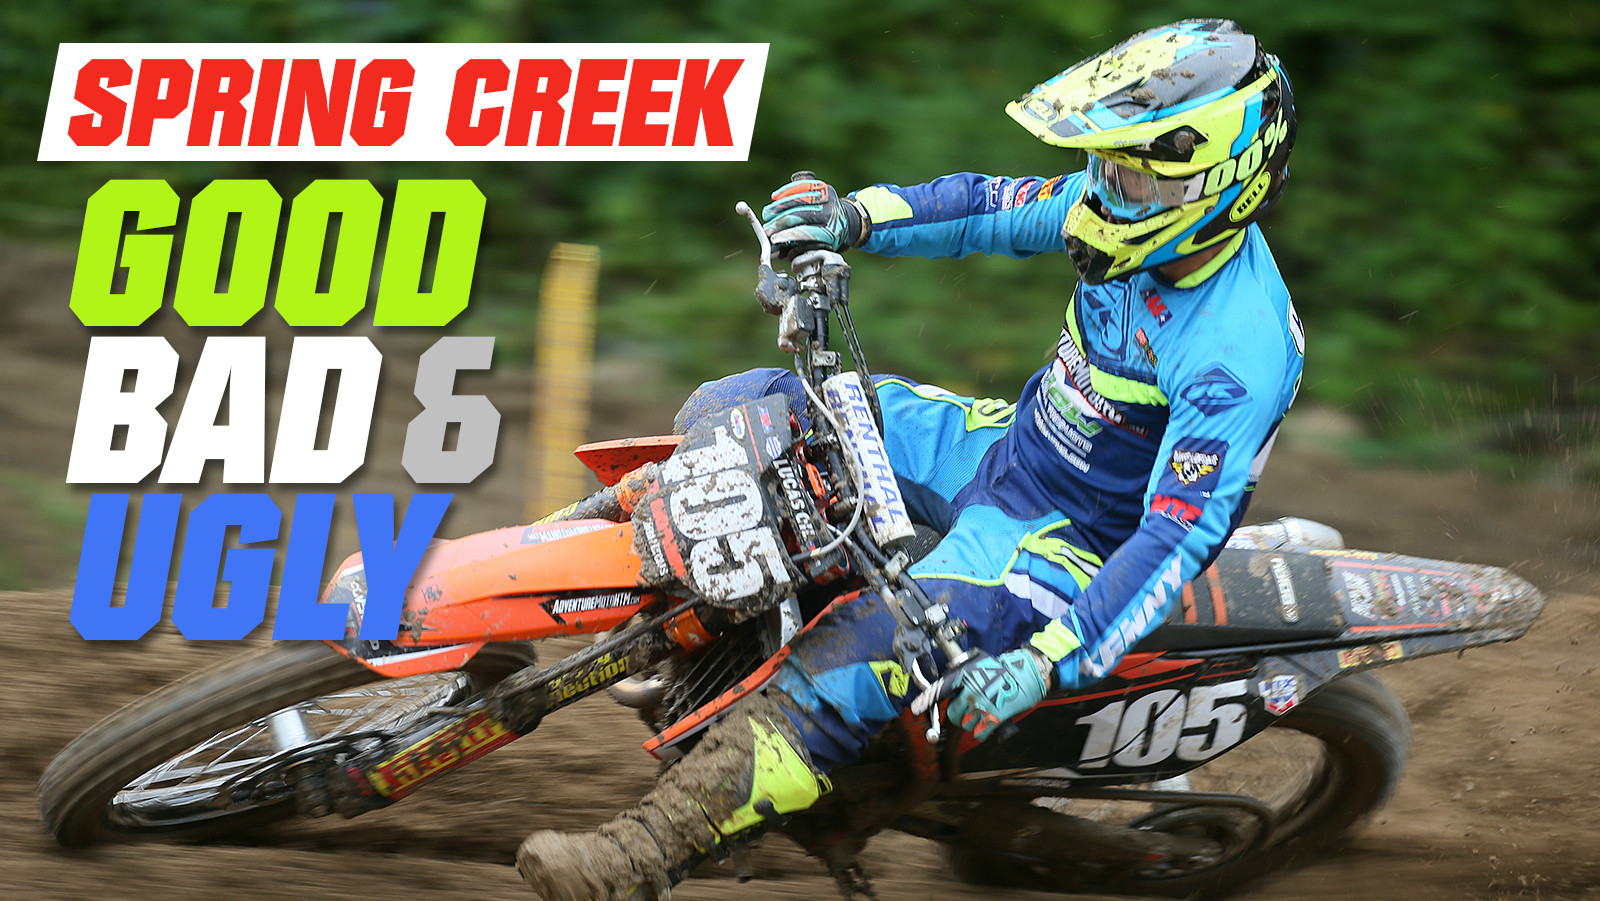 Spring Creek - The Good, the Bad, and the Ugly